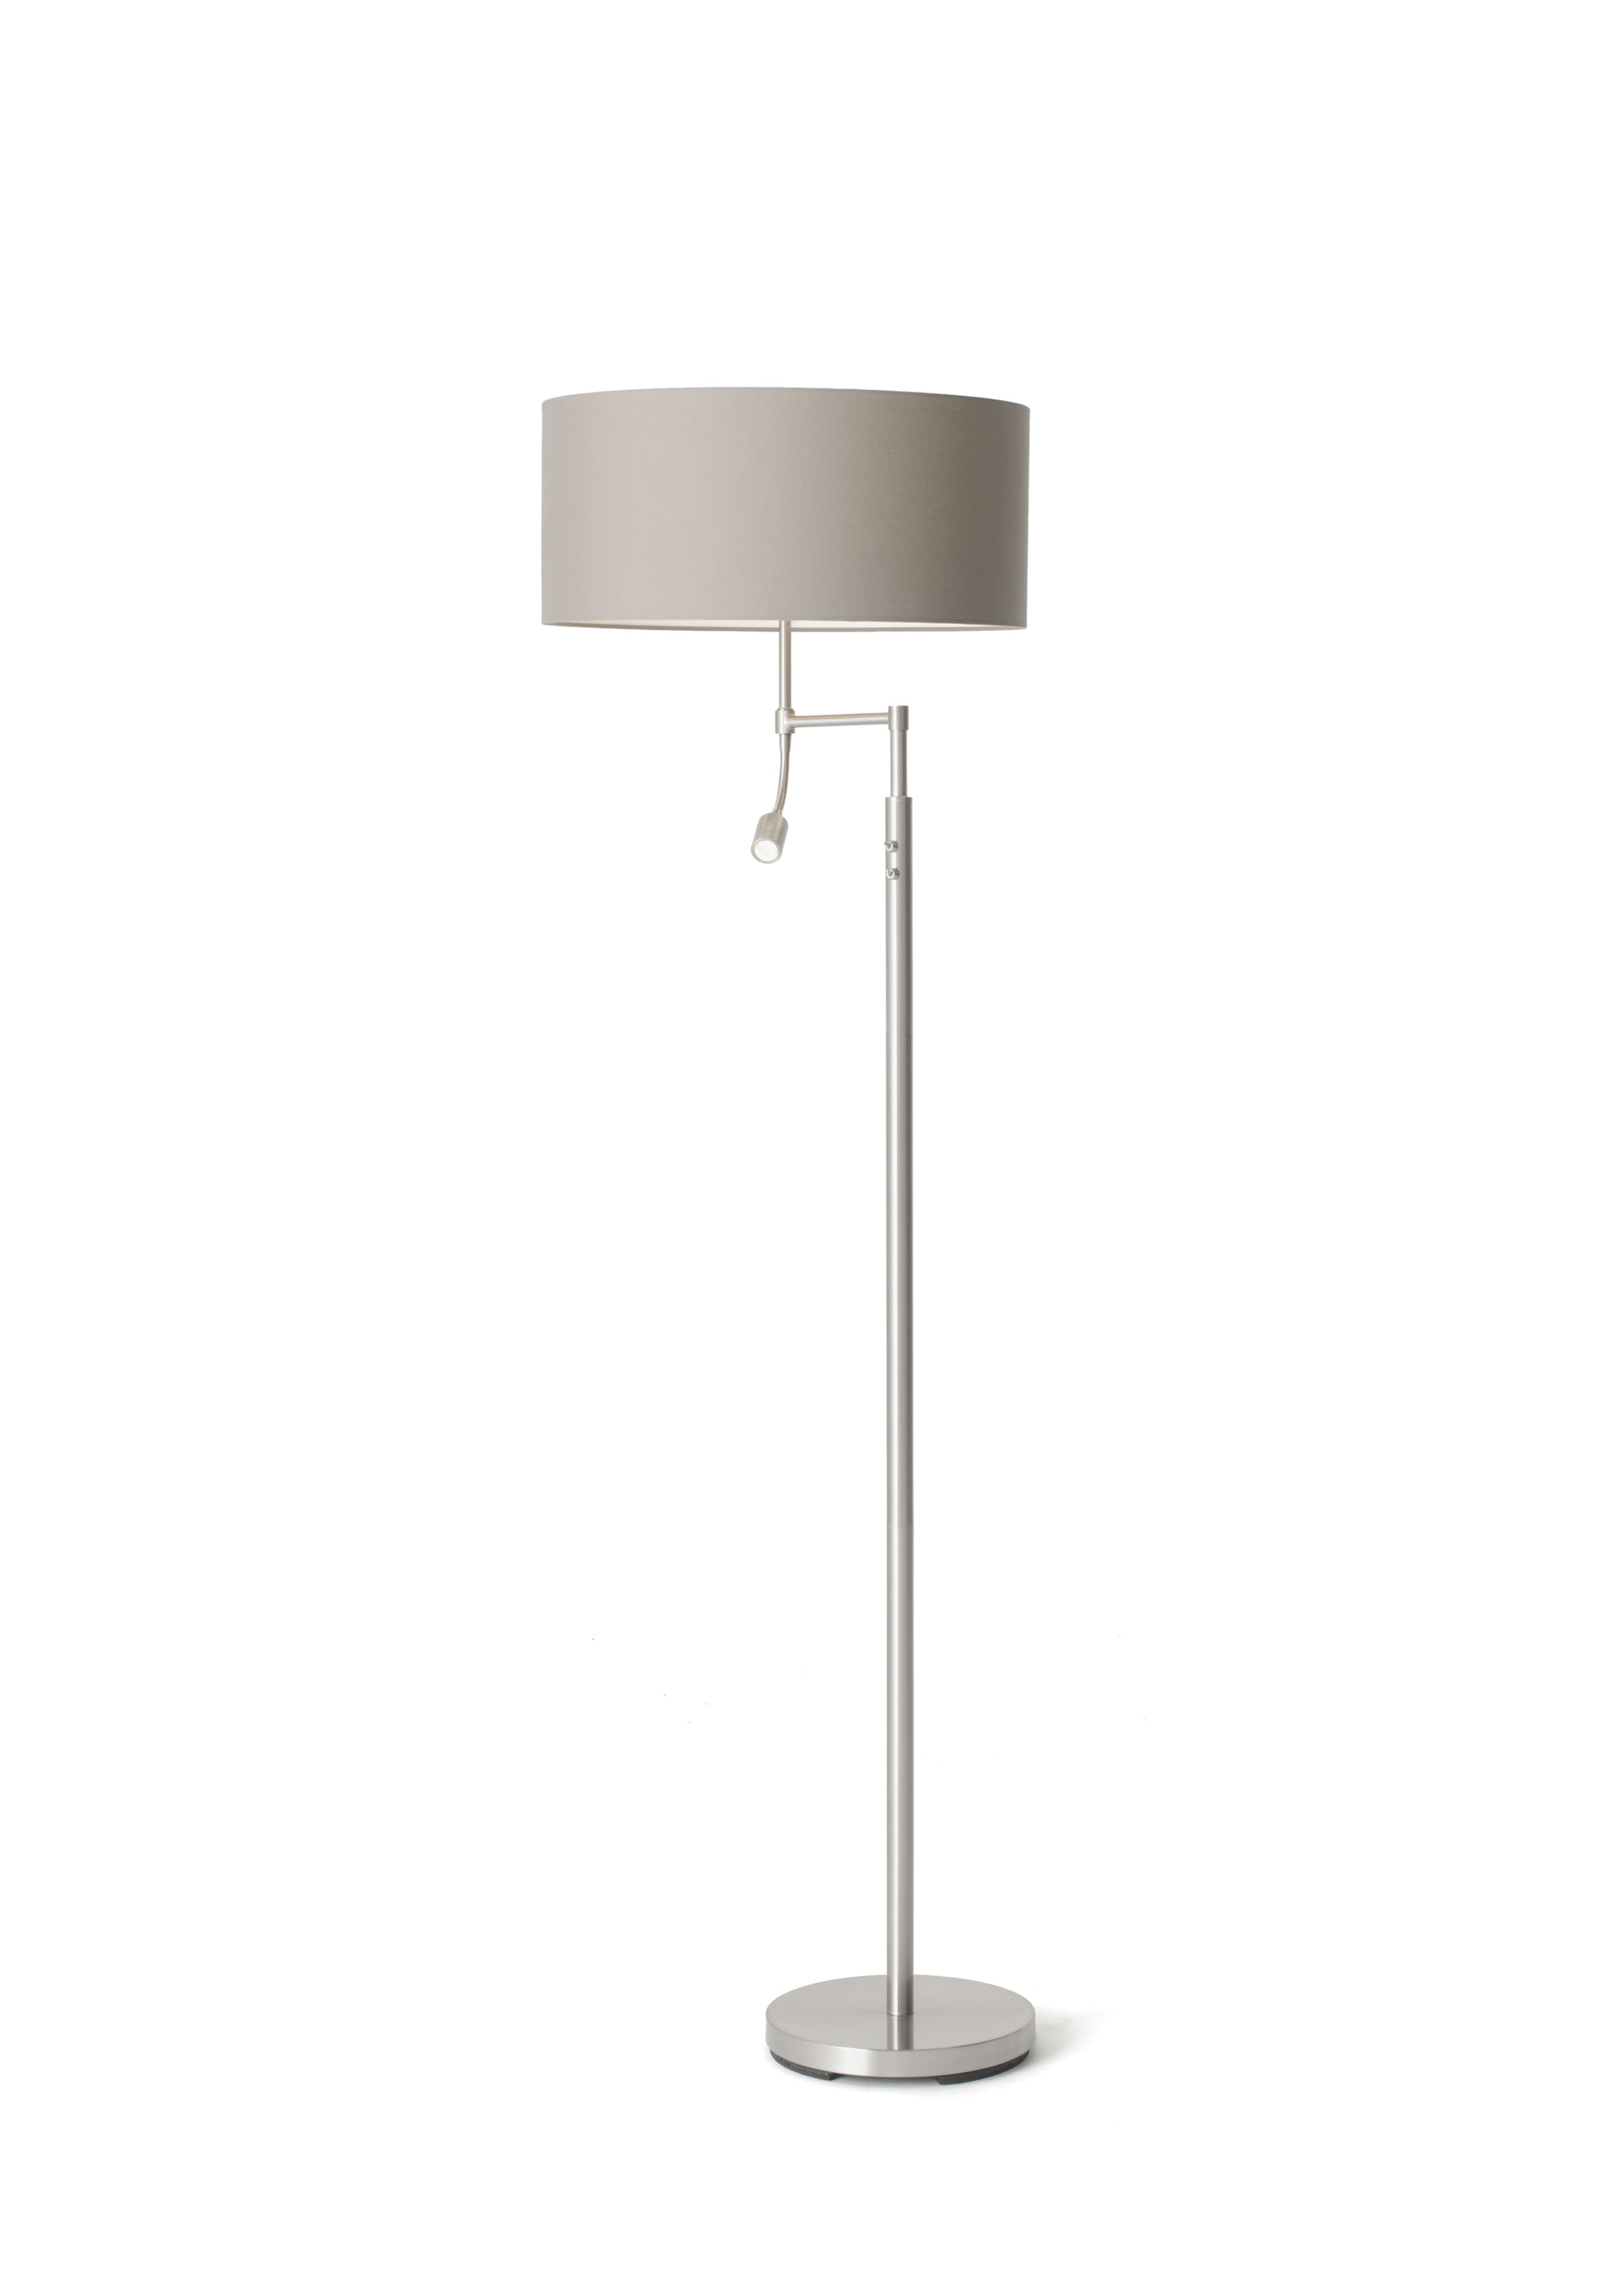 Oslo Floor Lamp W/shade : Polycotton Grey-0